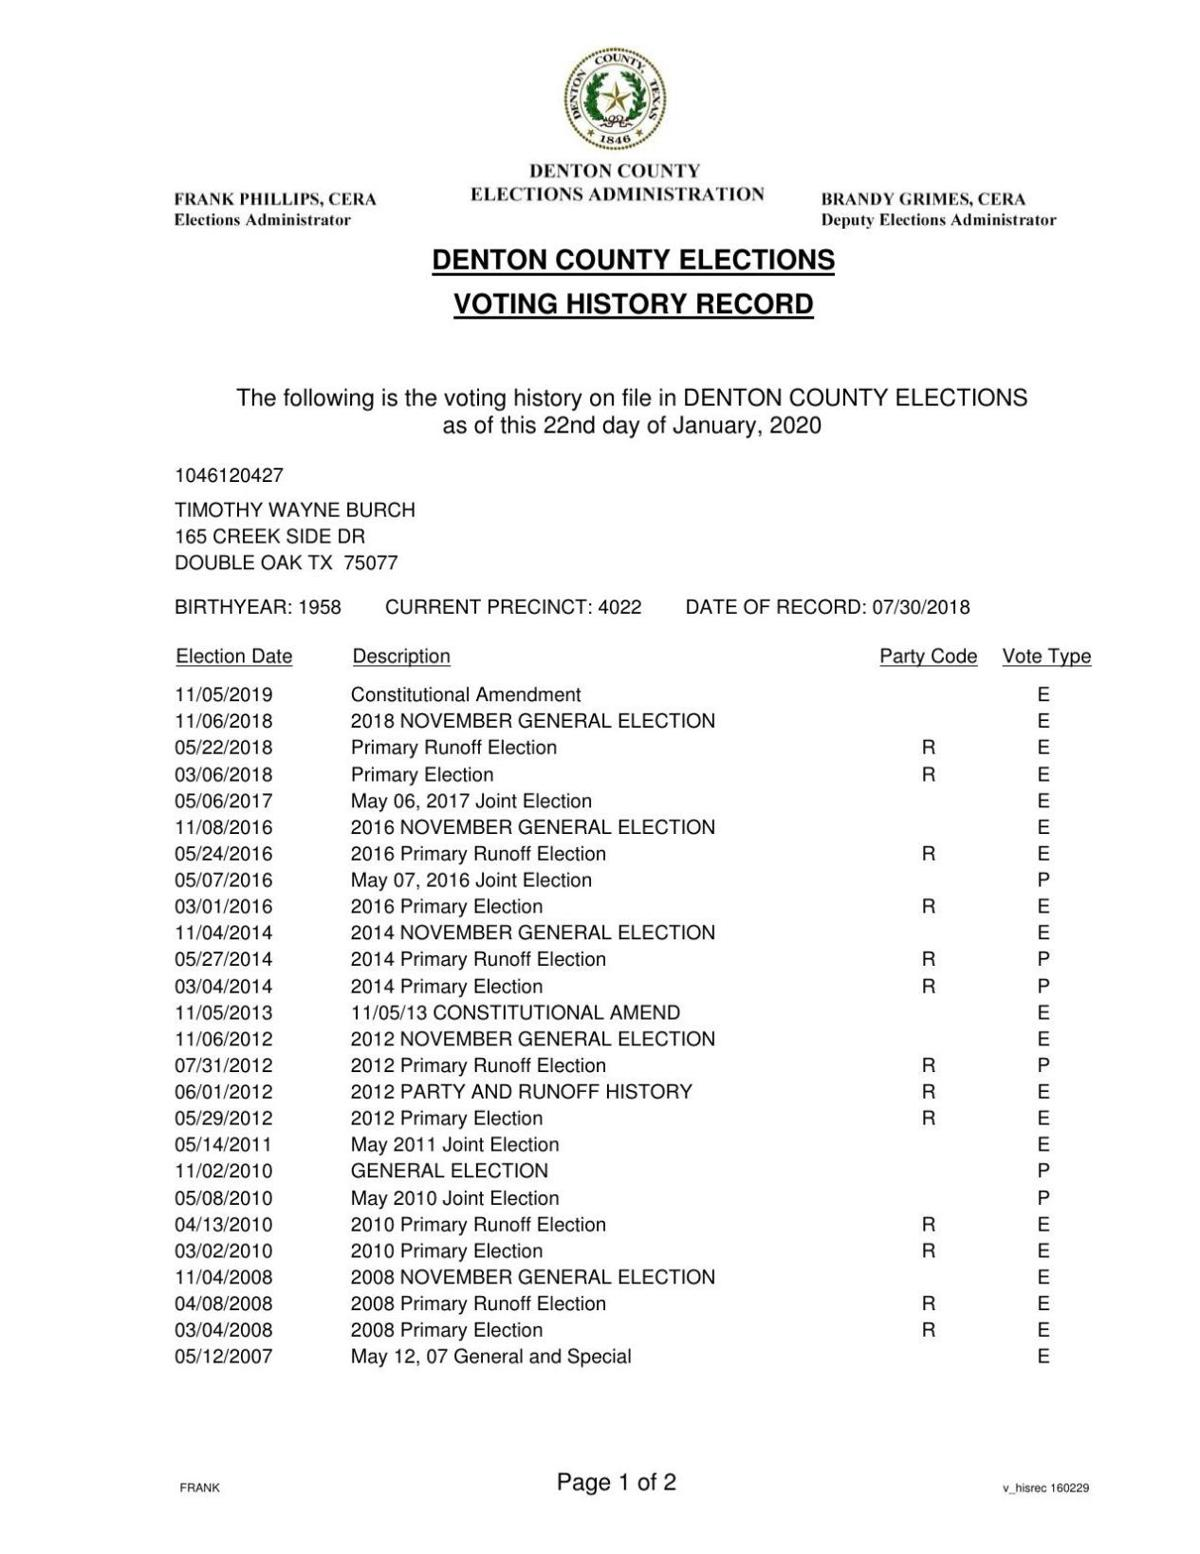 Tim Burch voting history